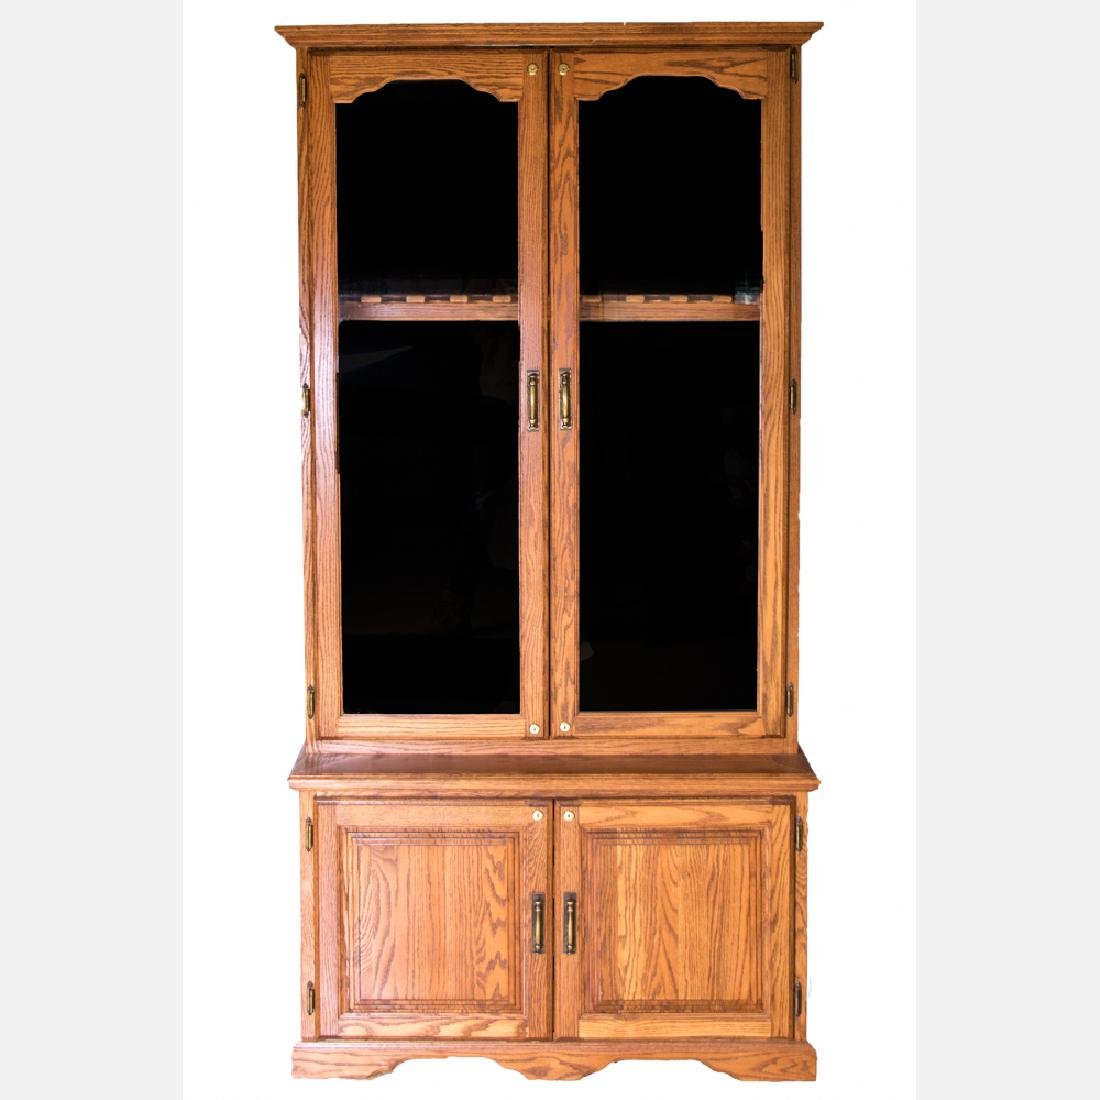 An American Oak and Glass Gun Cabinet, 20th Century.